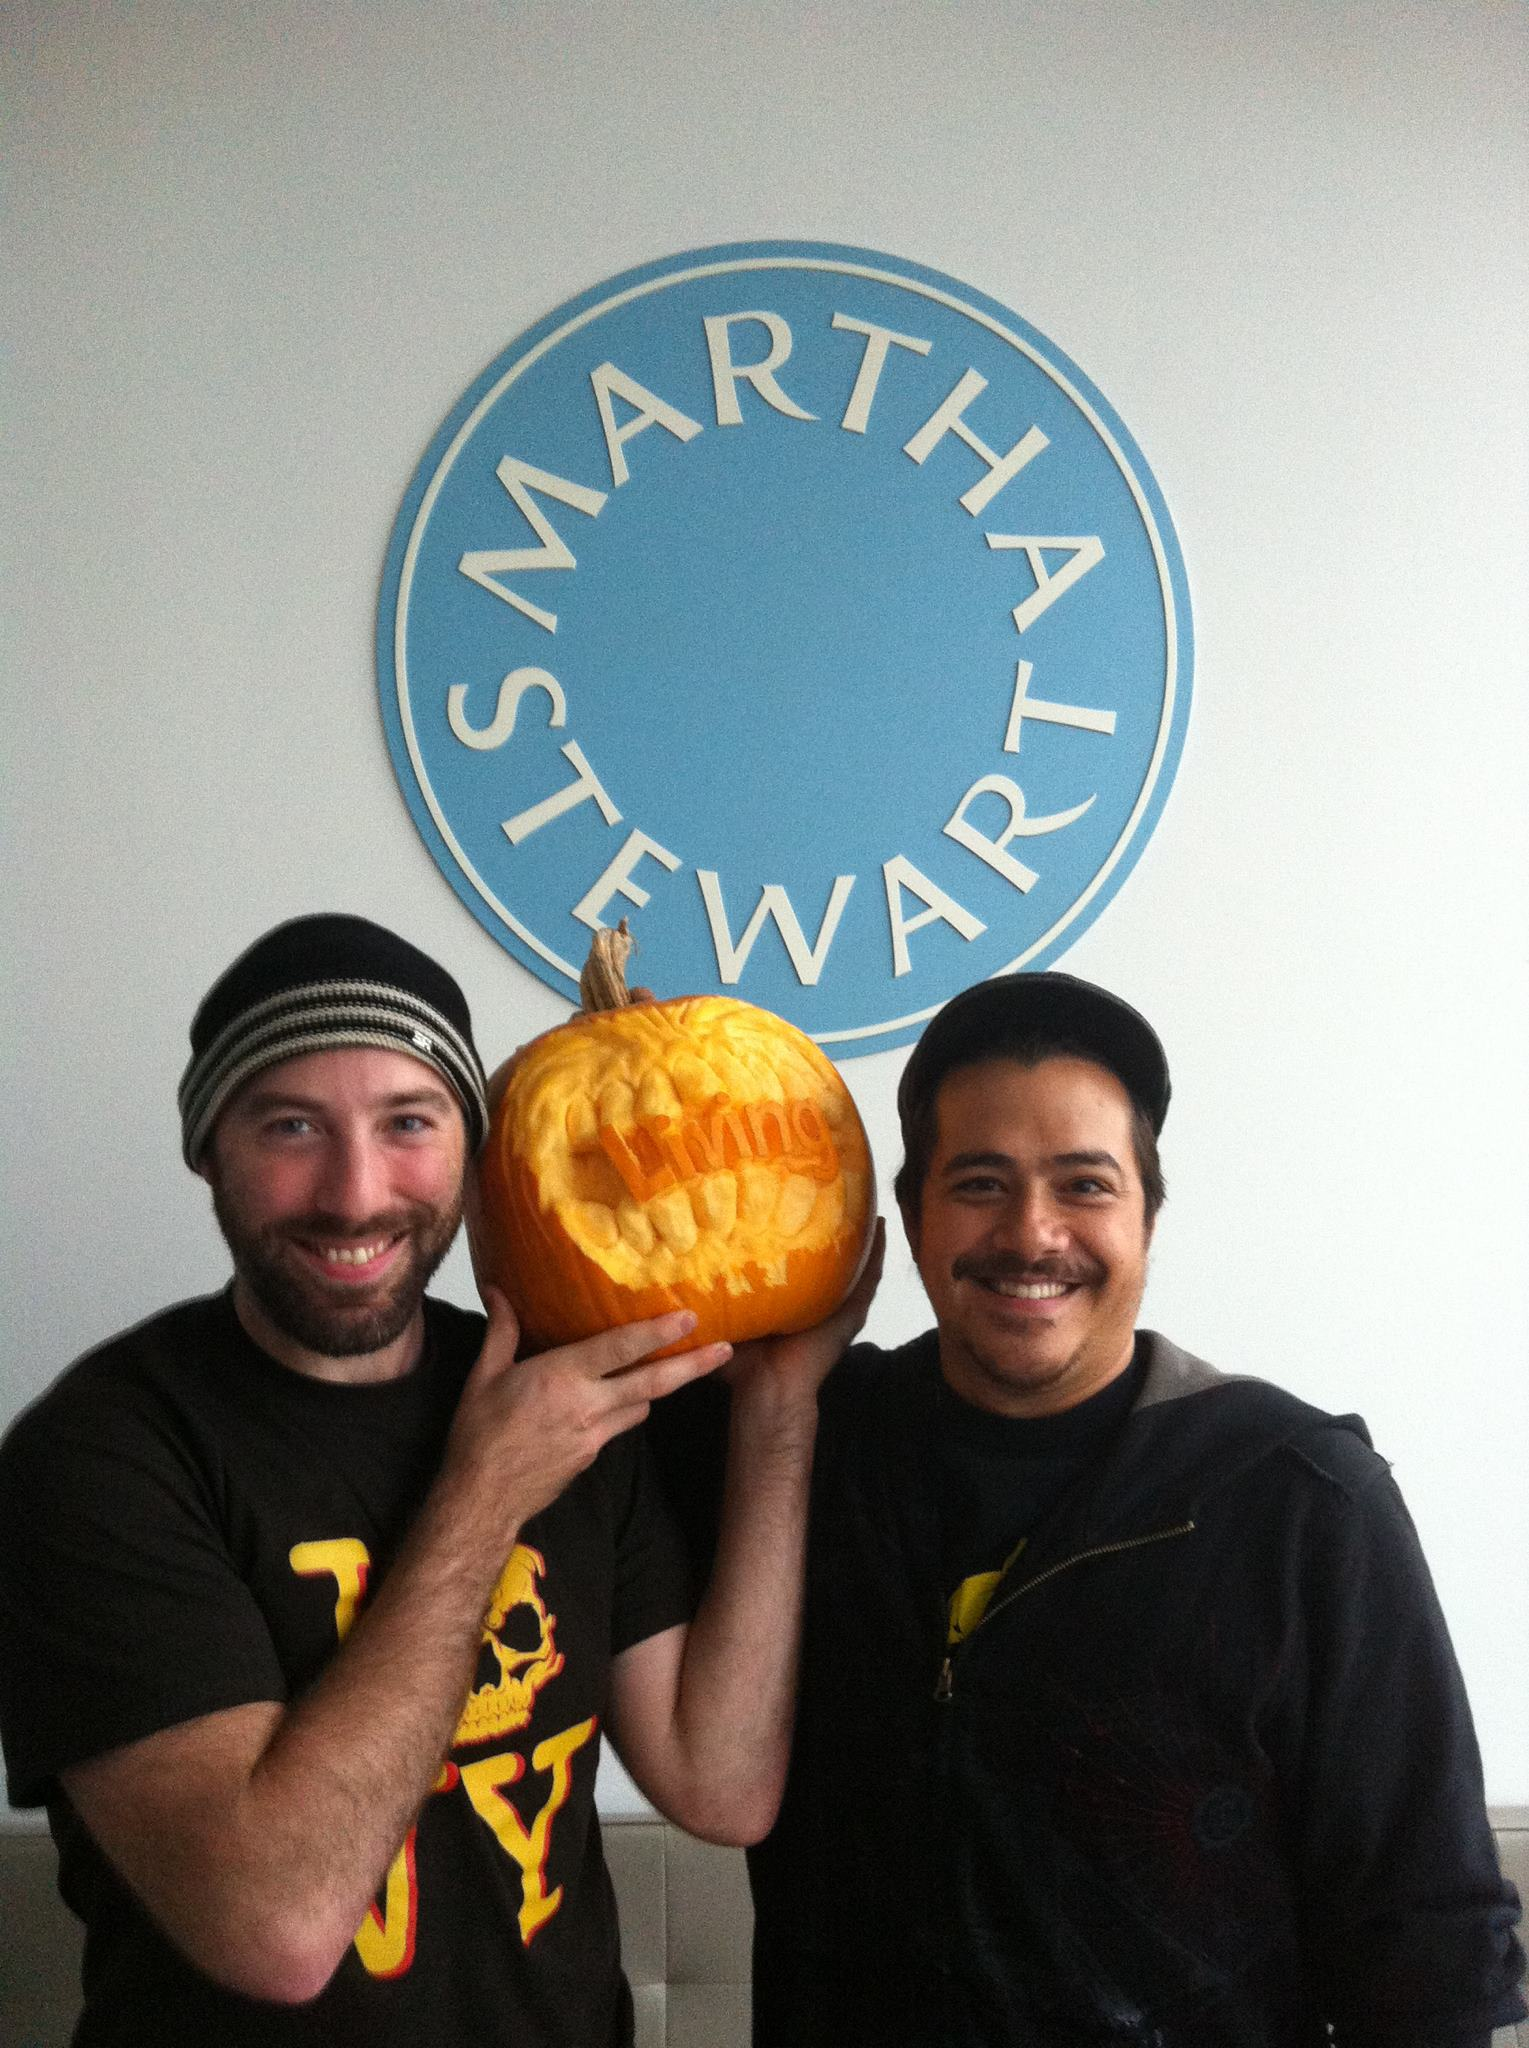 Maniac at the MS headquarters carving for Martha Stewart Living